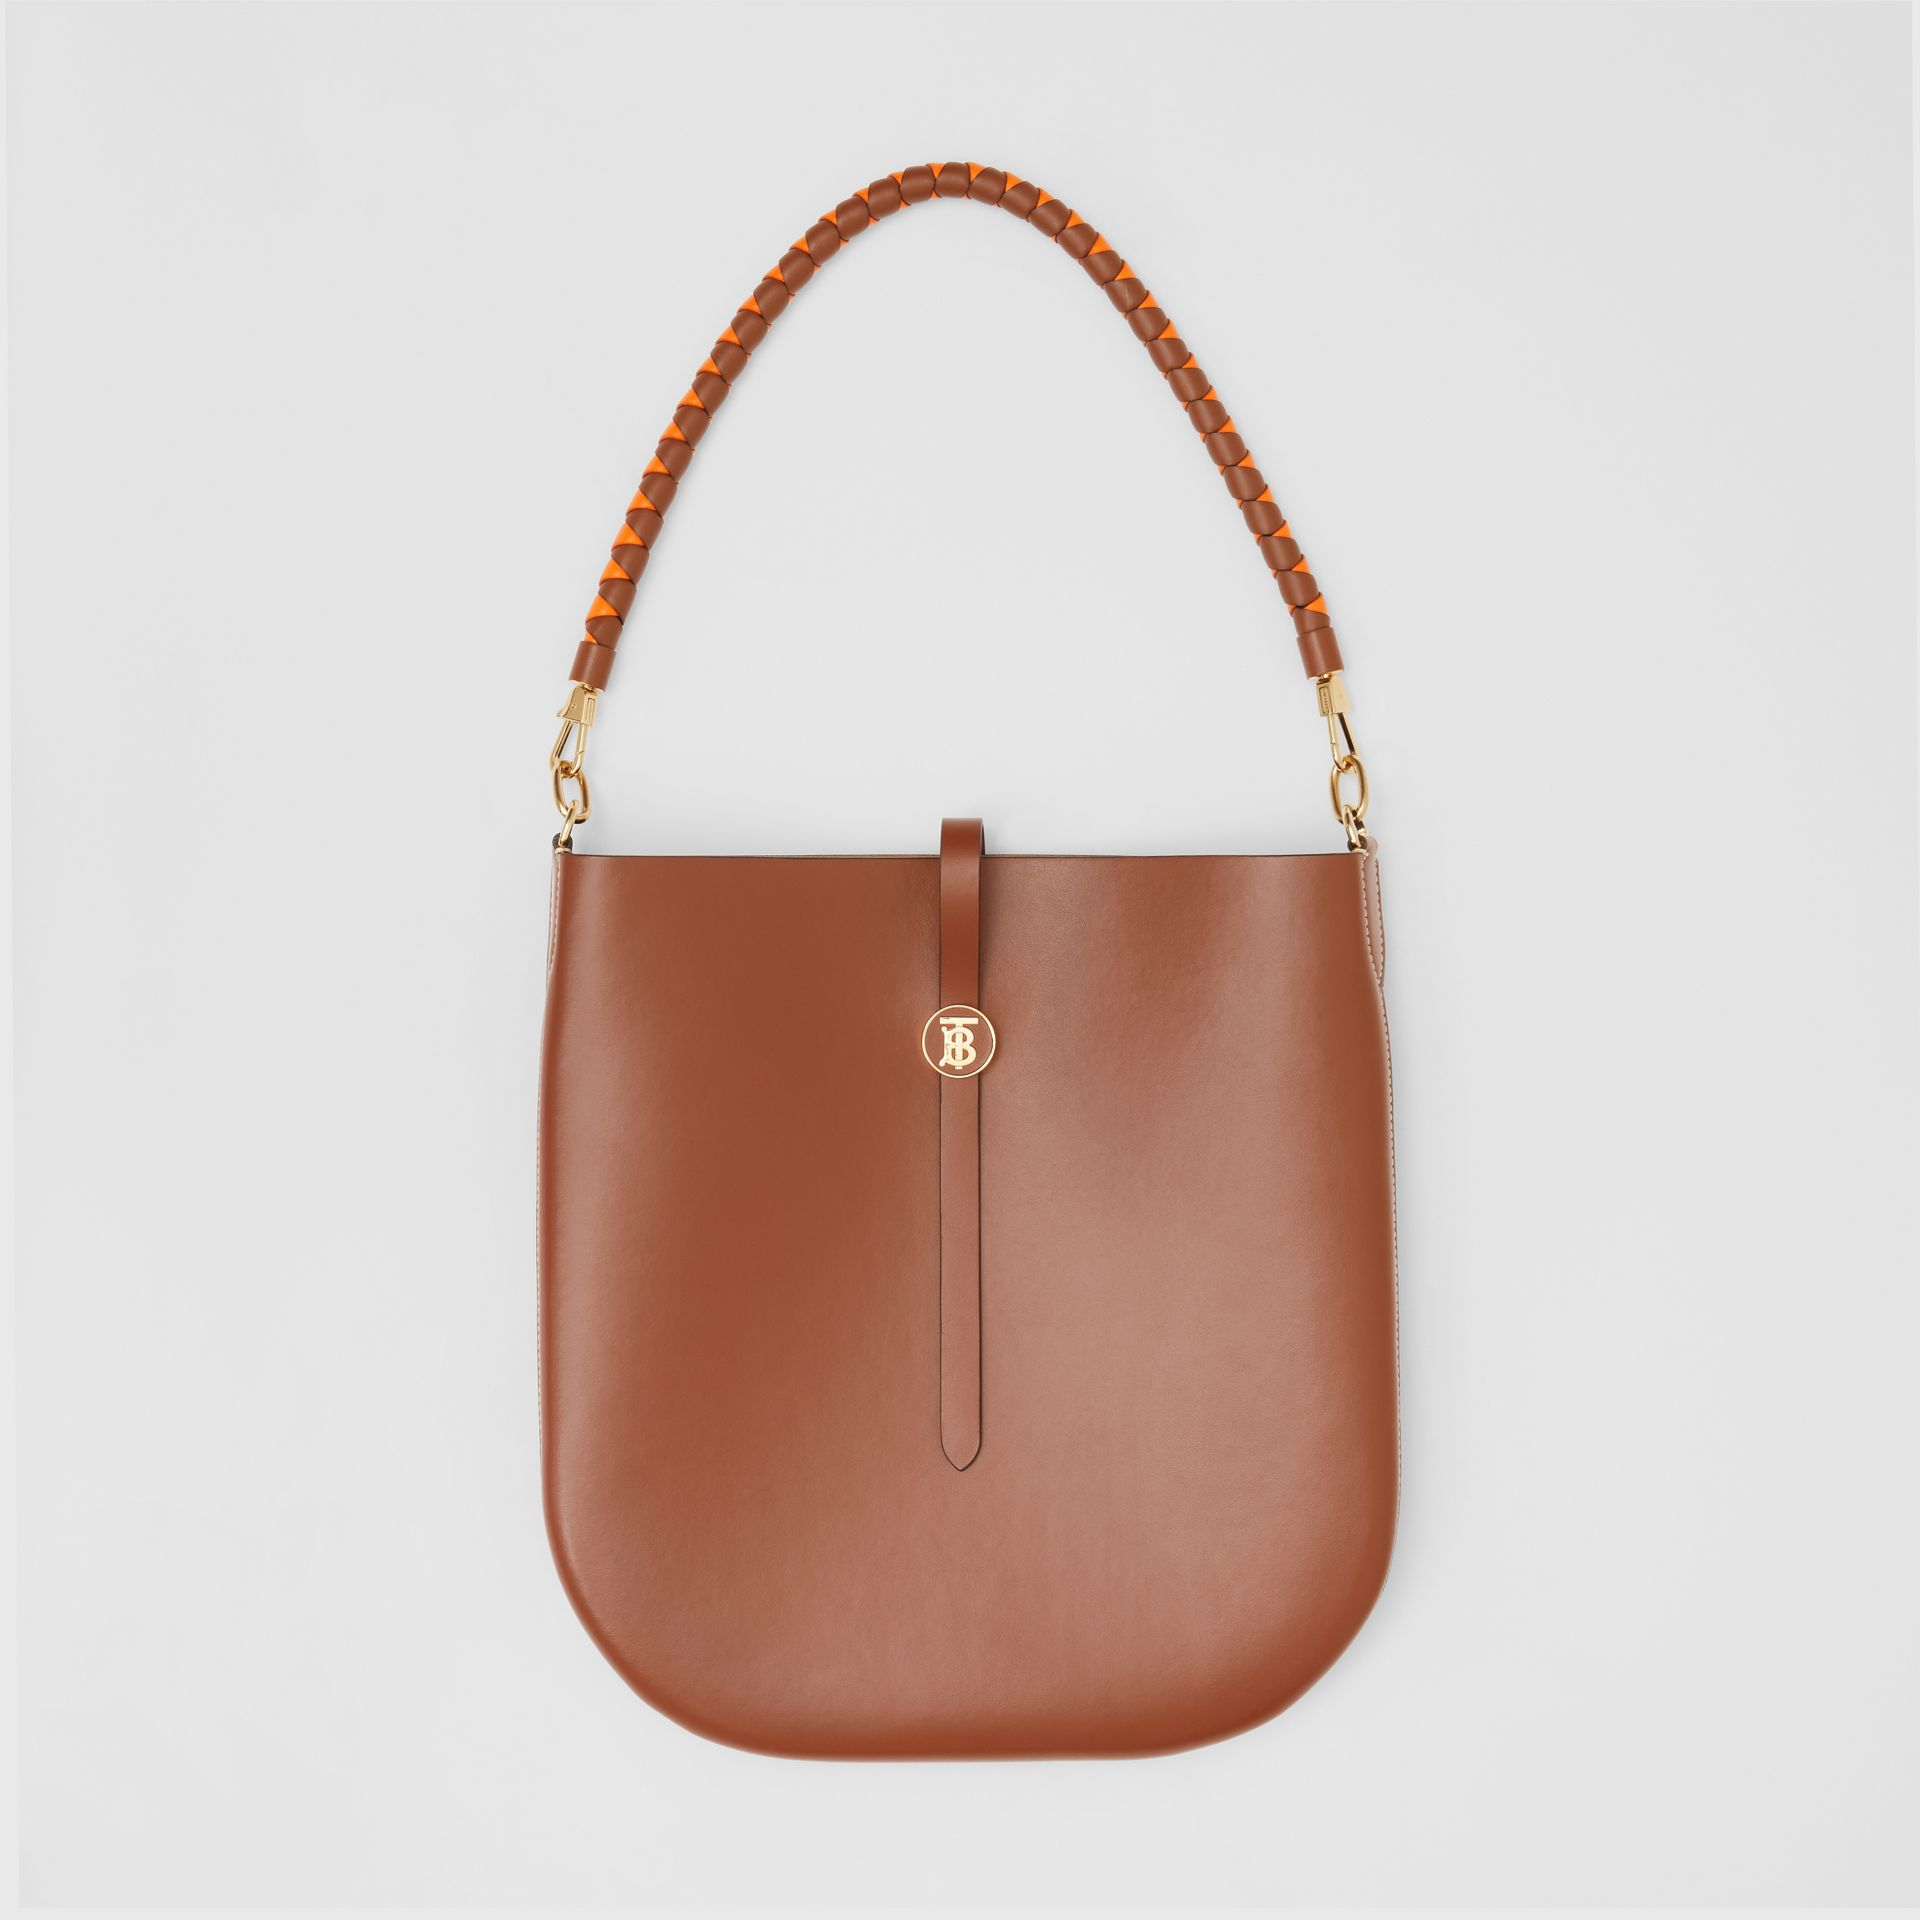 Leather Anne Bag in Tan - Women | Burberry - gallery image 3